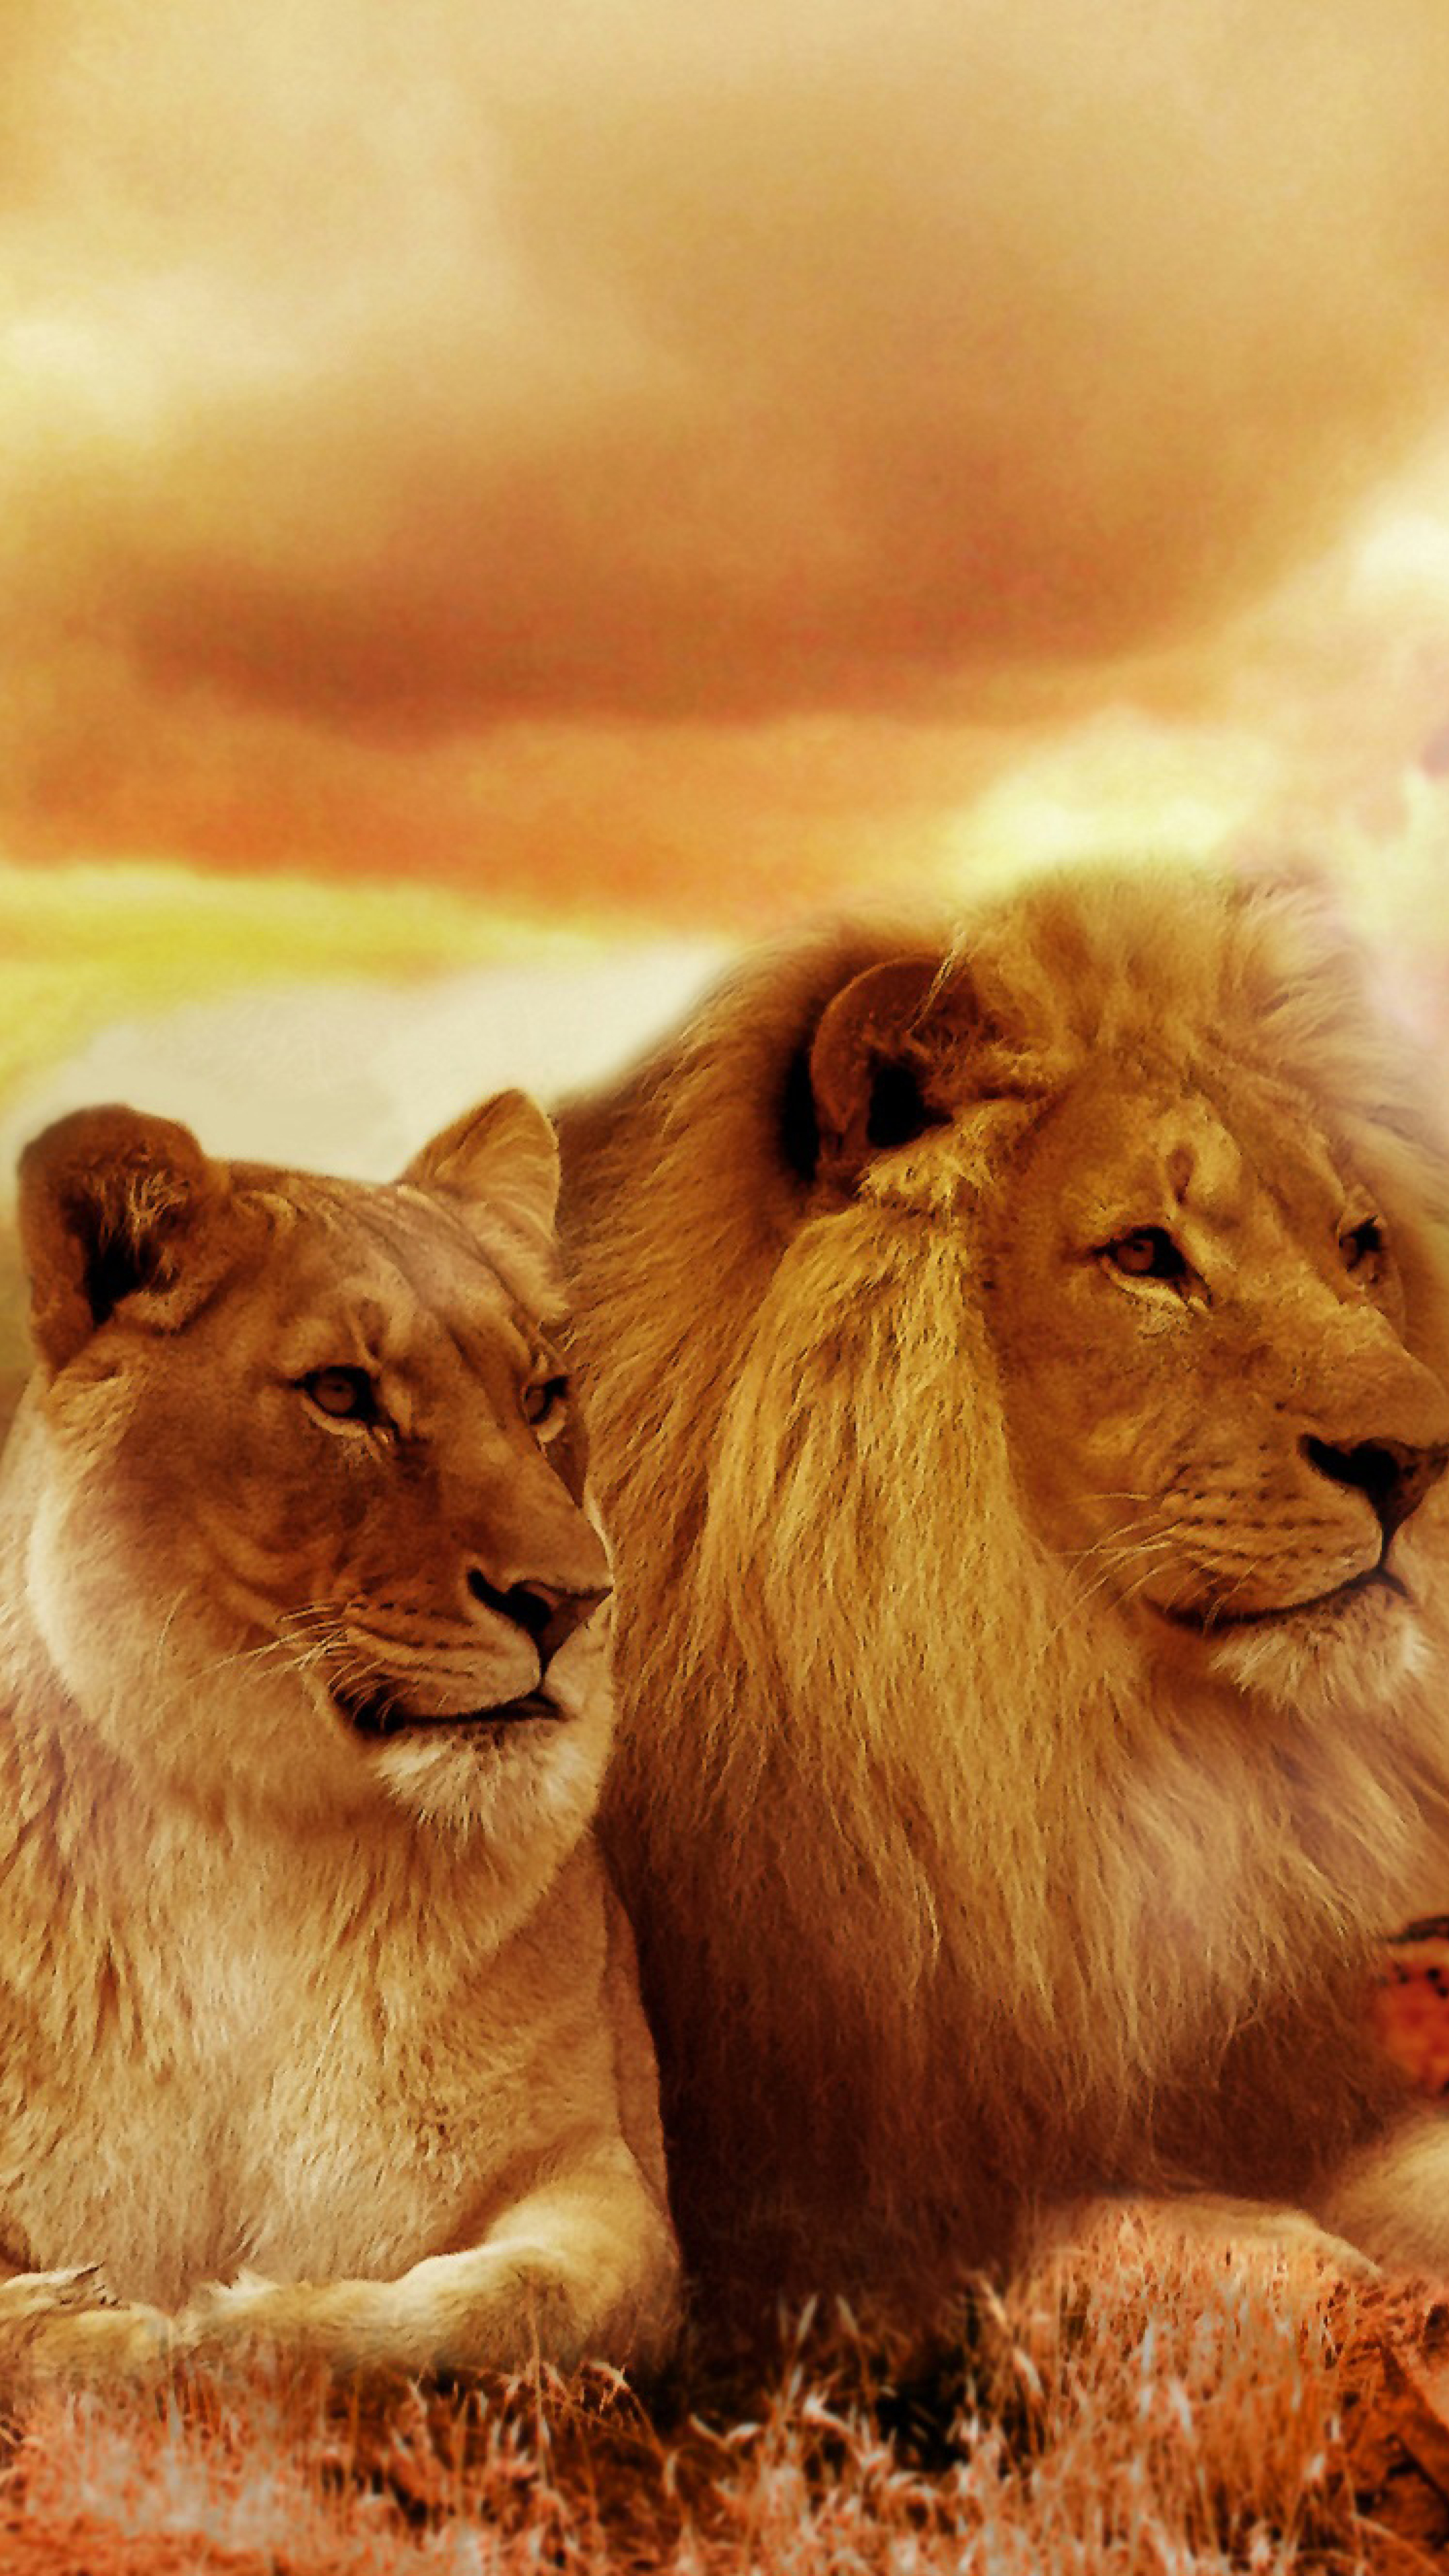 African Lion And Lioness, Full HD Wallpaper